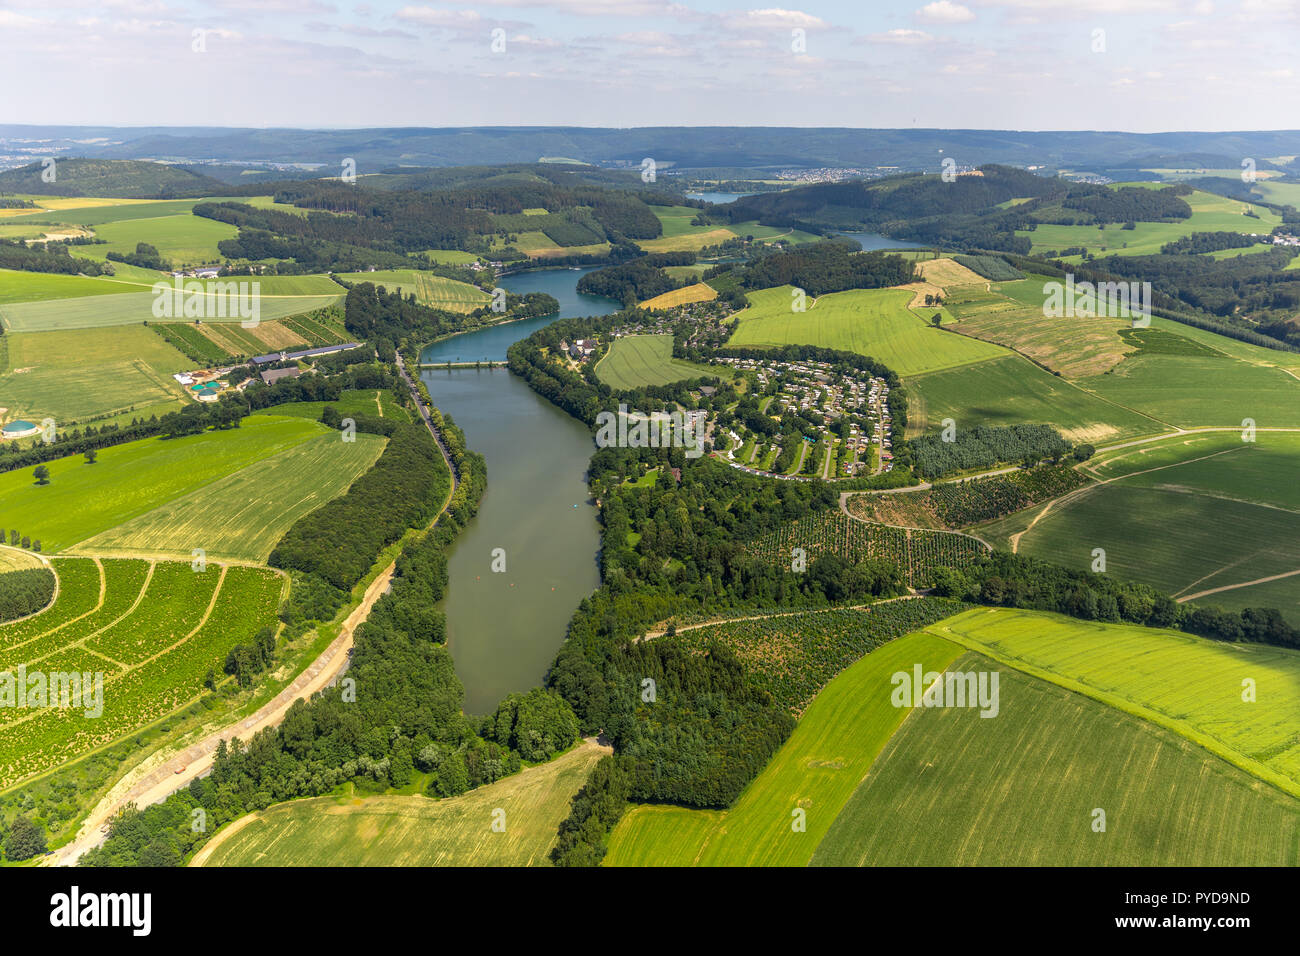 Aerial view, KNAUS Camping Park Hennesee, southern Hennesee, Meschede, Sauerland, North Rhine-Westphalia, Germany, DEU, Europe, birds-eyes view, aeria - Stock Image